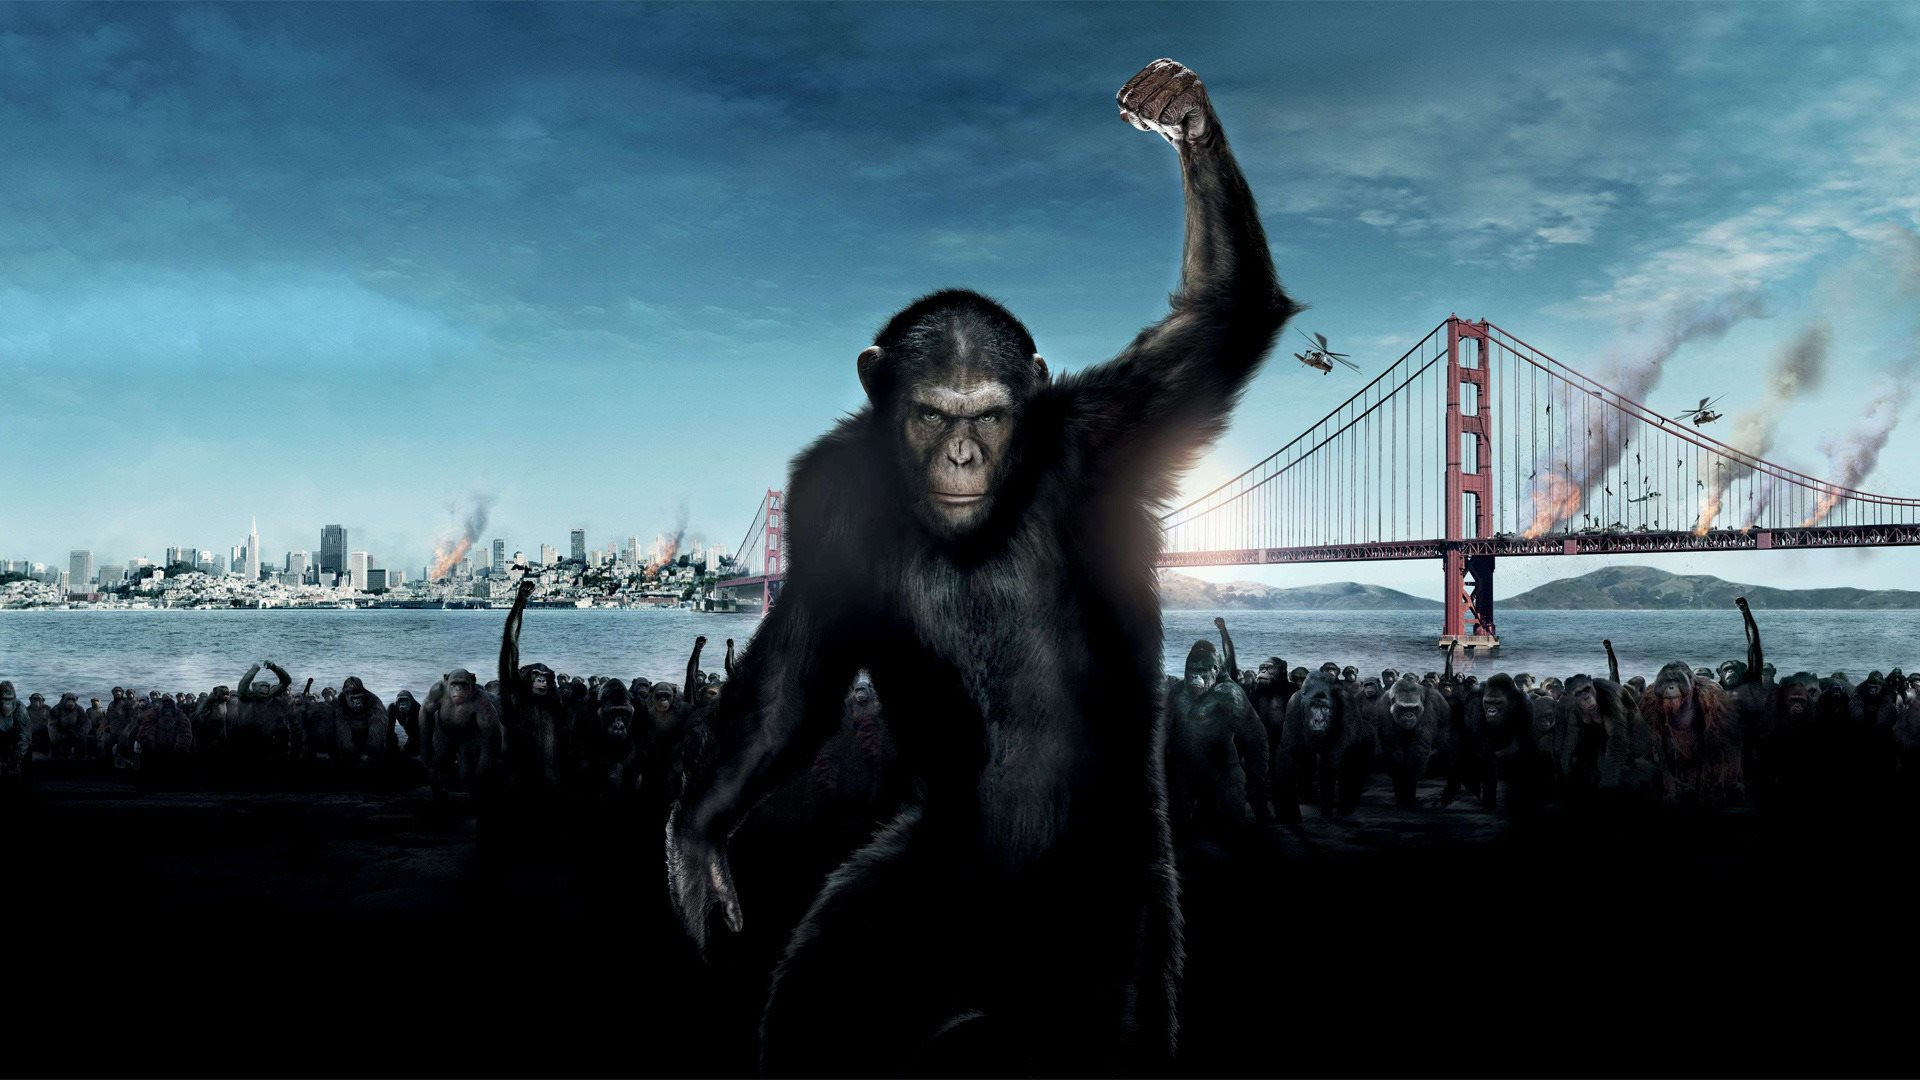 Dawn-of-the-Planet-of-the-Apes-2014-Poster7